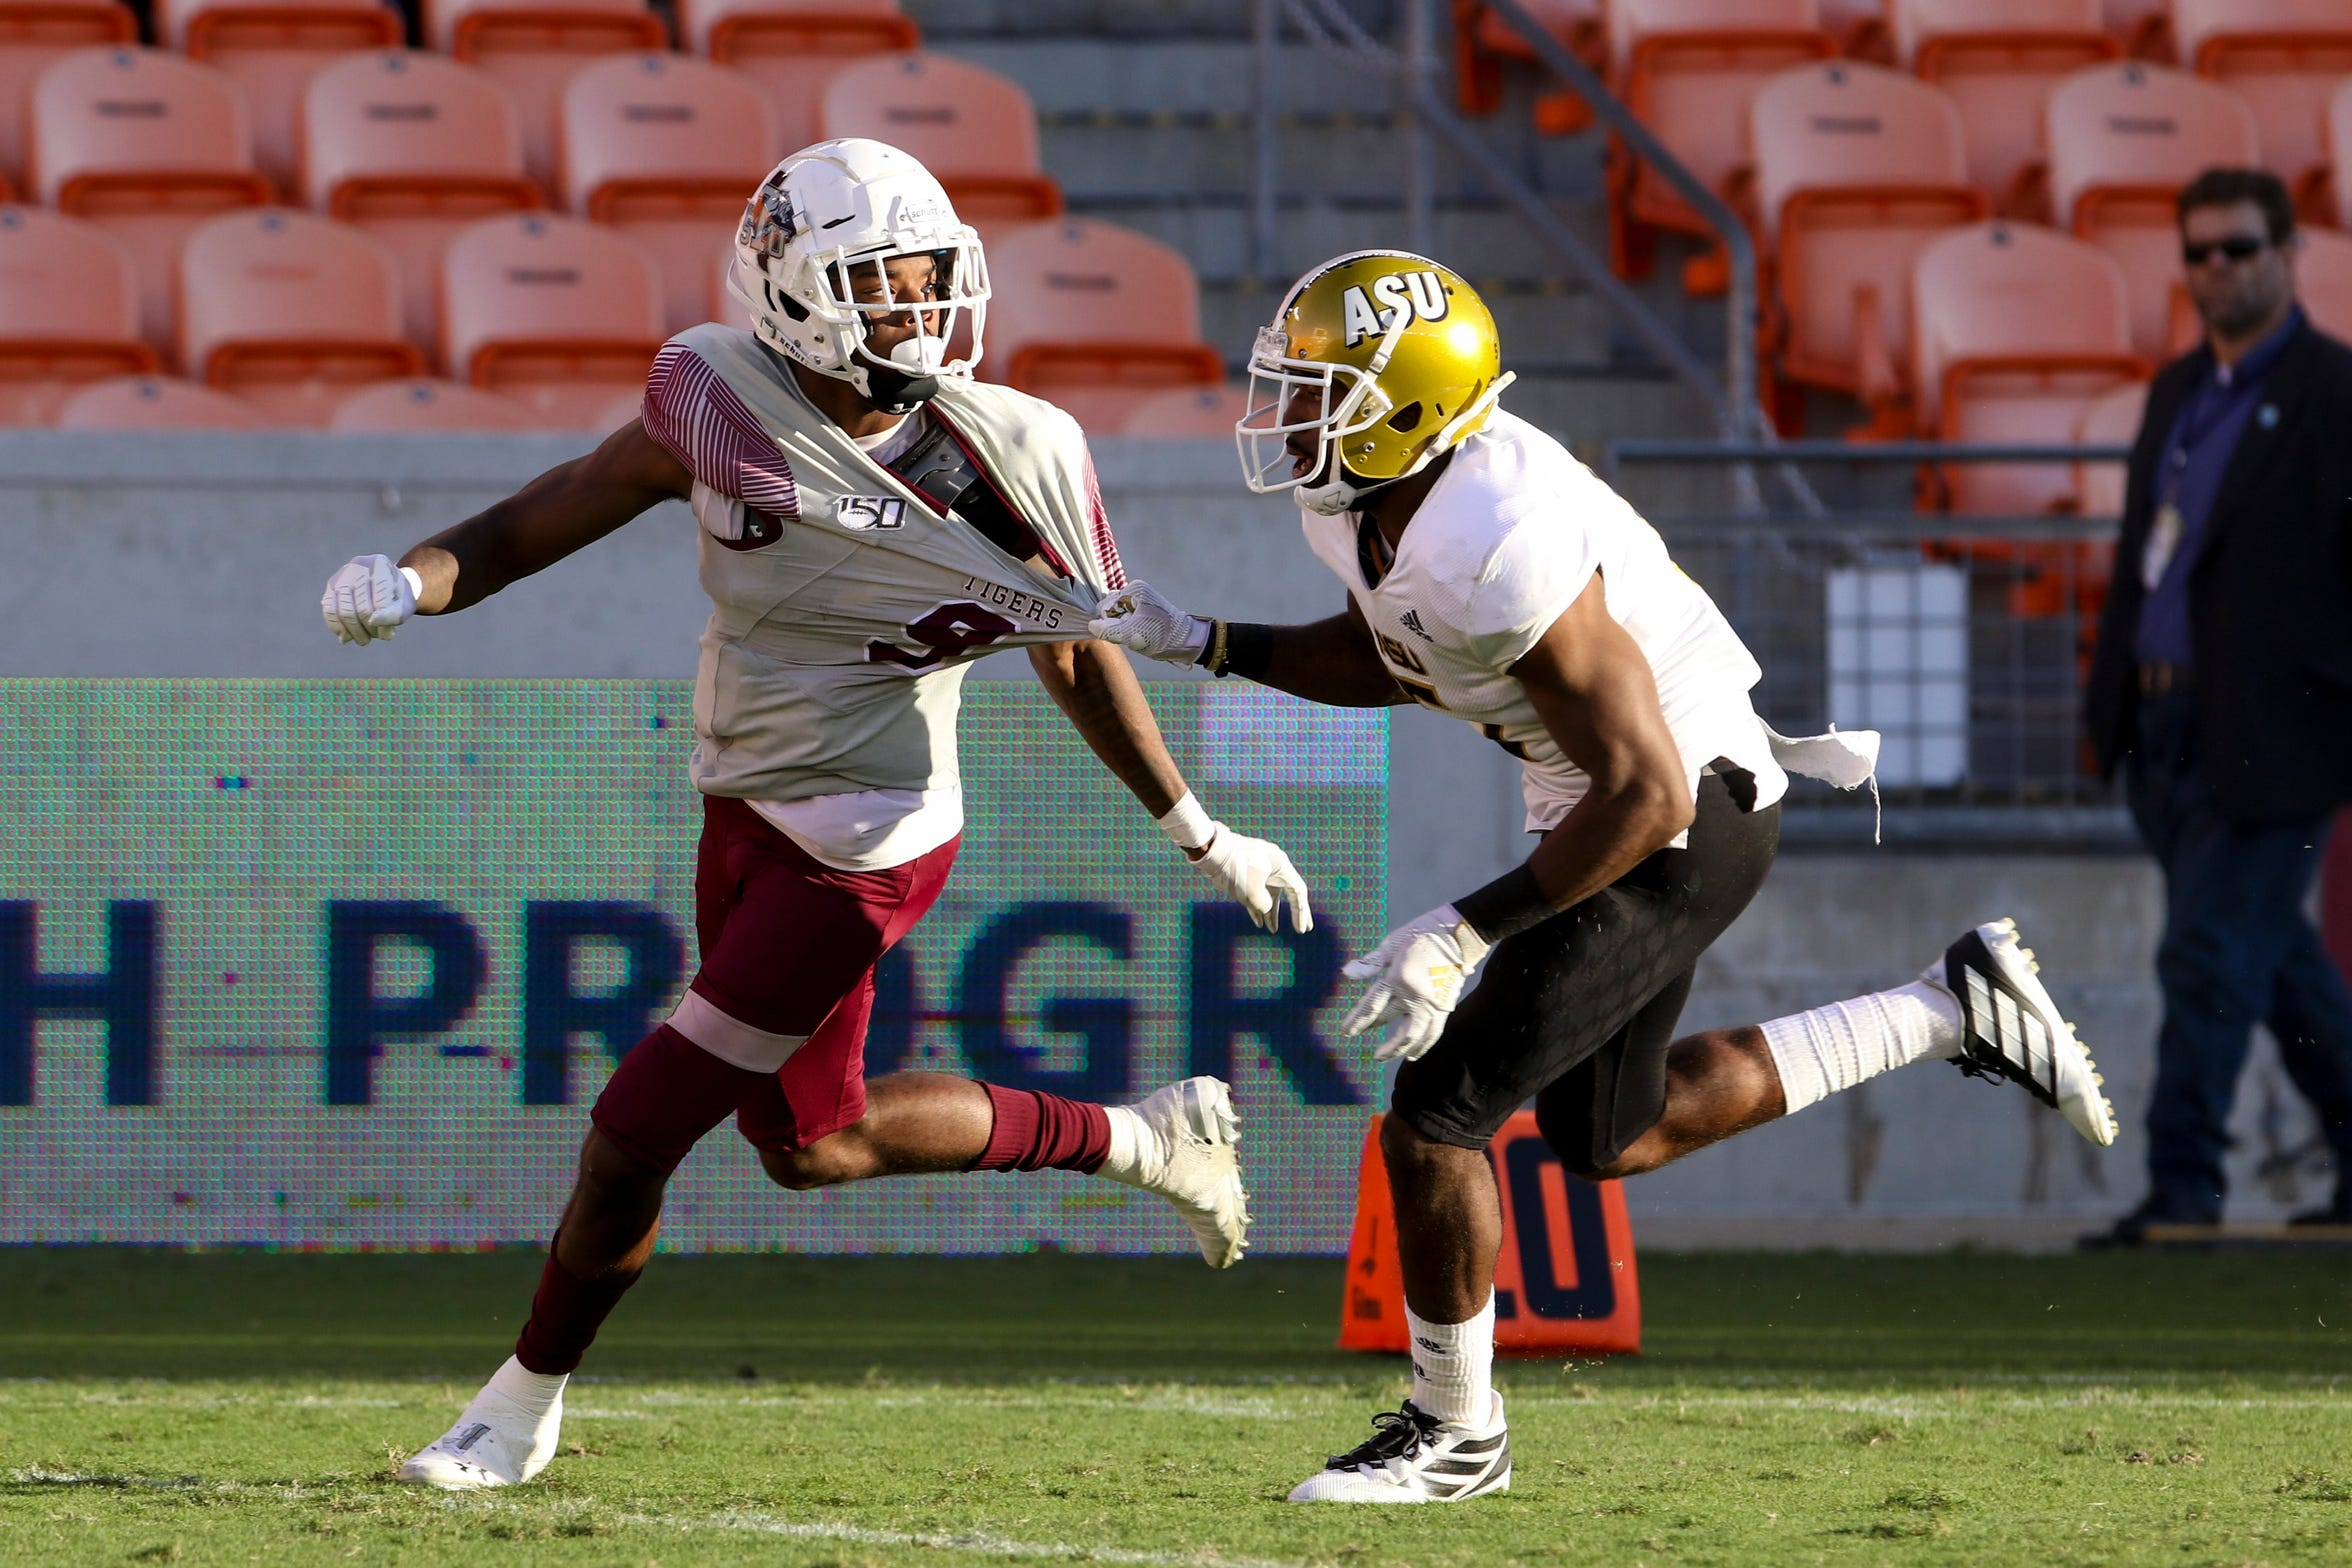 Donnie Corley had 1,039 receiving yards and three touchdowns this season for Texas Southern. He has one year of eligibility remaining.